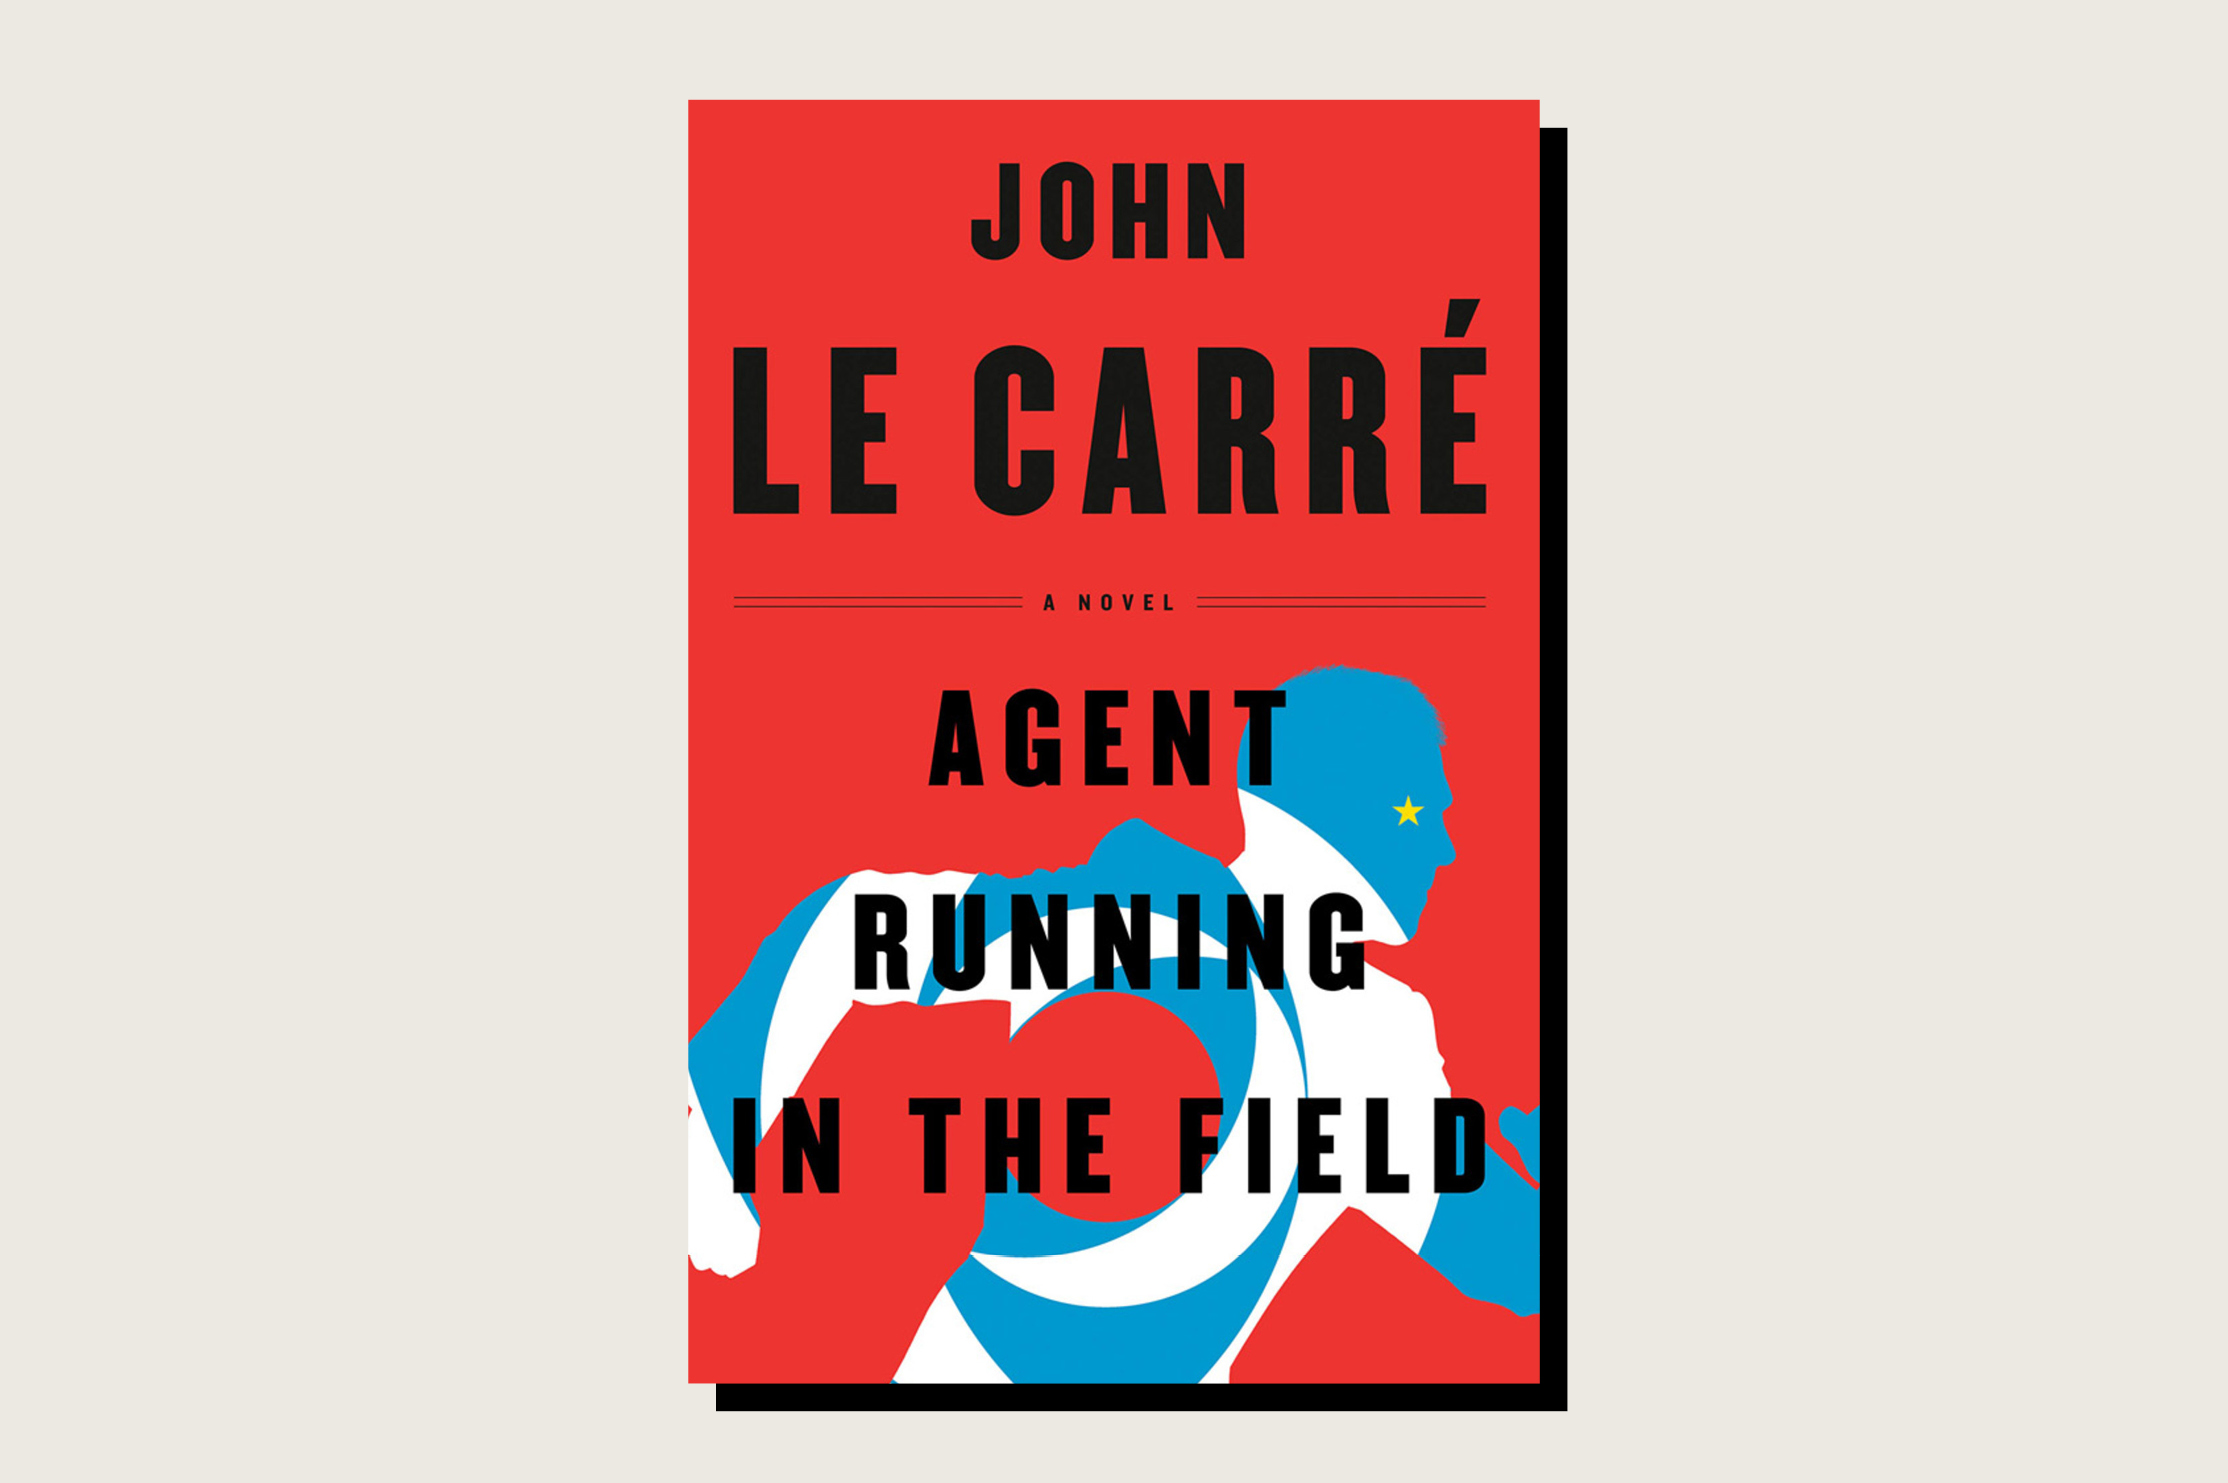 Agent Running in the Field, John Le Carré, Viking, 288 pp., , Oct. 22, 2019